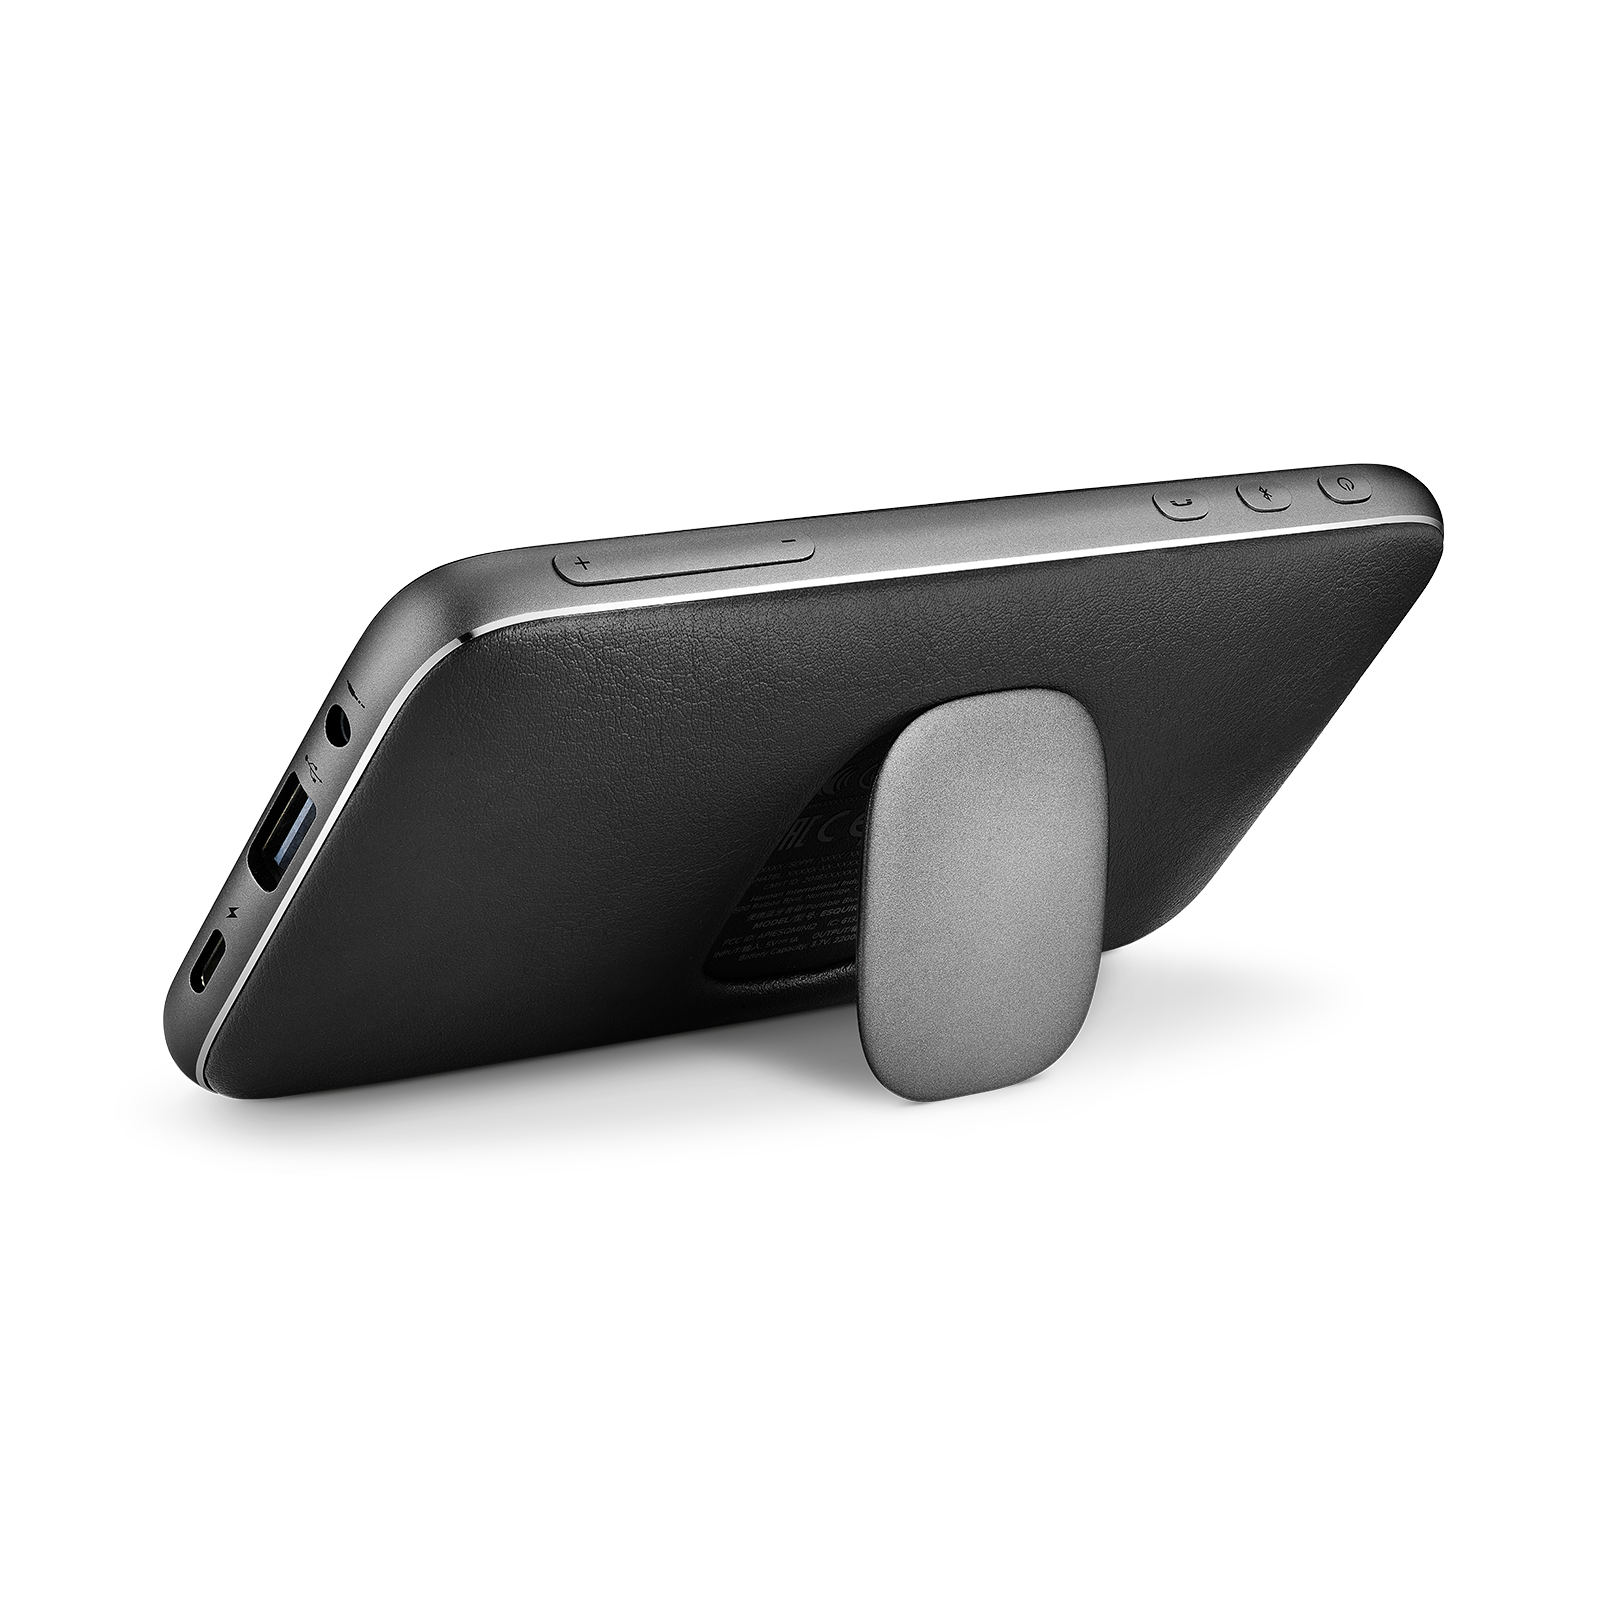 Harman Kardon Esquire Mini 2 - Black - Ultra-slim and portable premium Bluetooth Speaker - Back